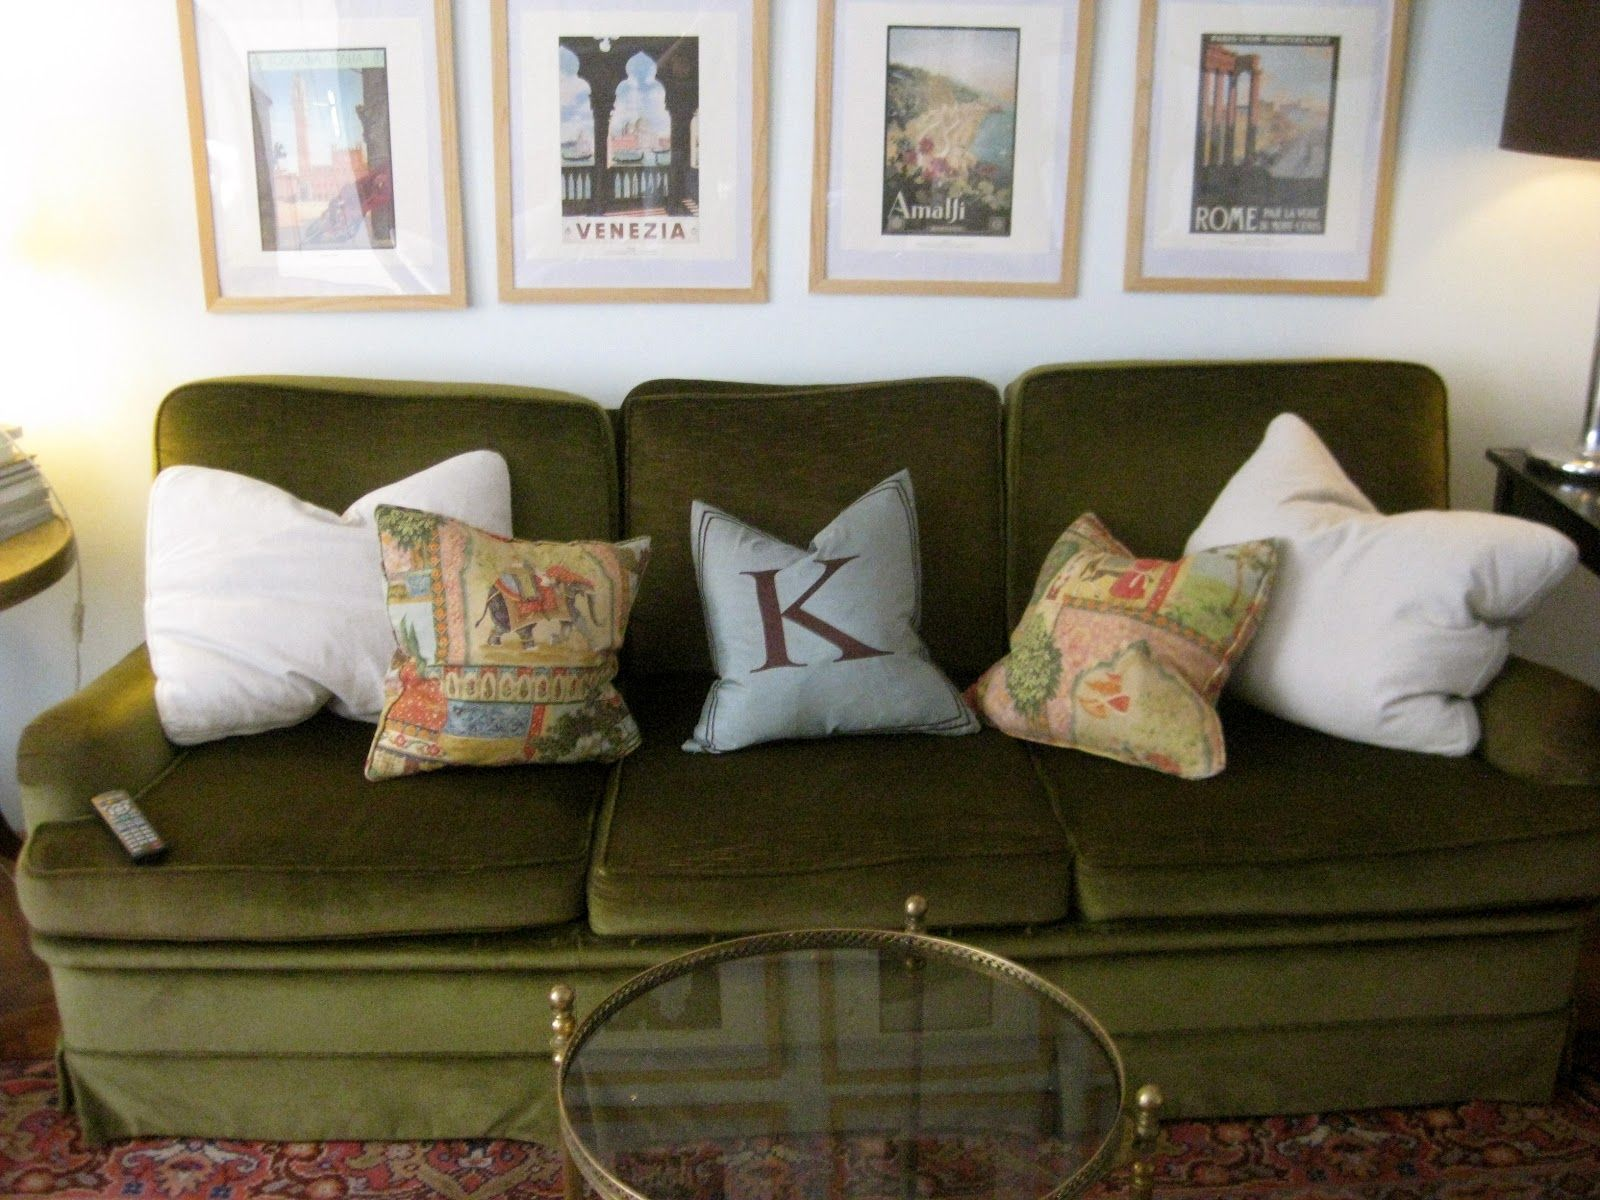 Fancy Green Leather Couch Decorating Ideas 81 In With Green Leather Couch Decorating Ideas Jpg Green Couch Living Room Green Couch Green Furniture Living Room #olive #green #couch #living #room